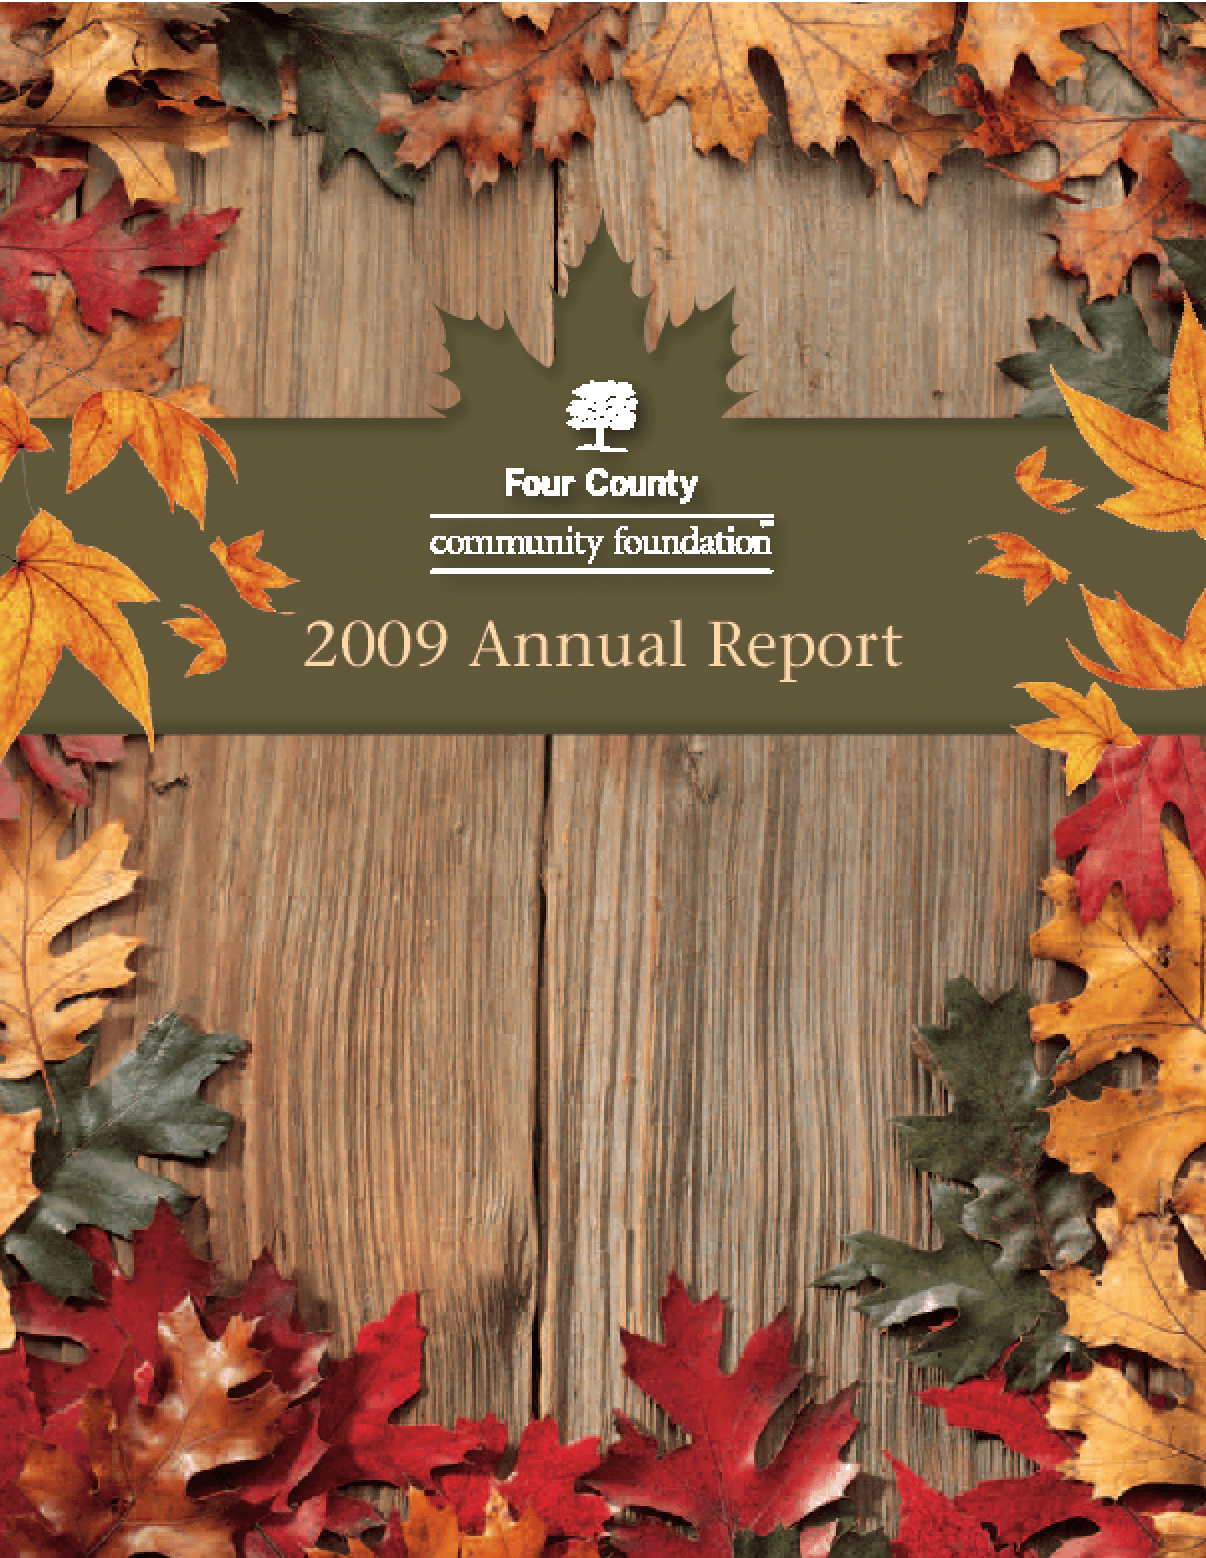 Four County Community Foundation - 2009 Annual Report